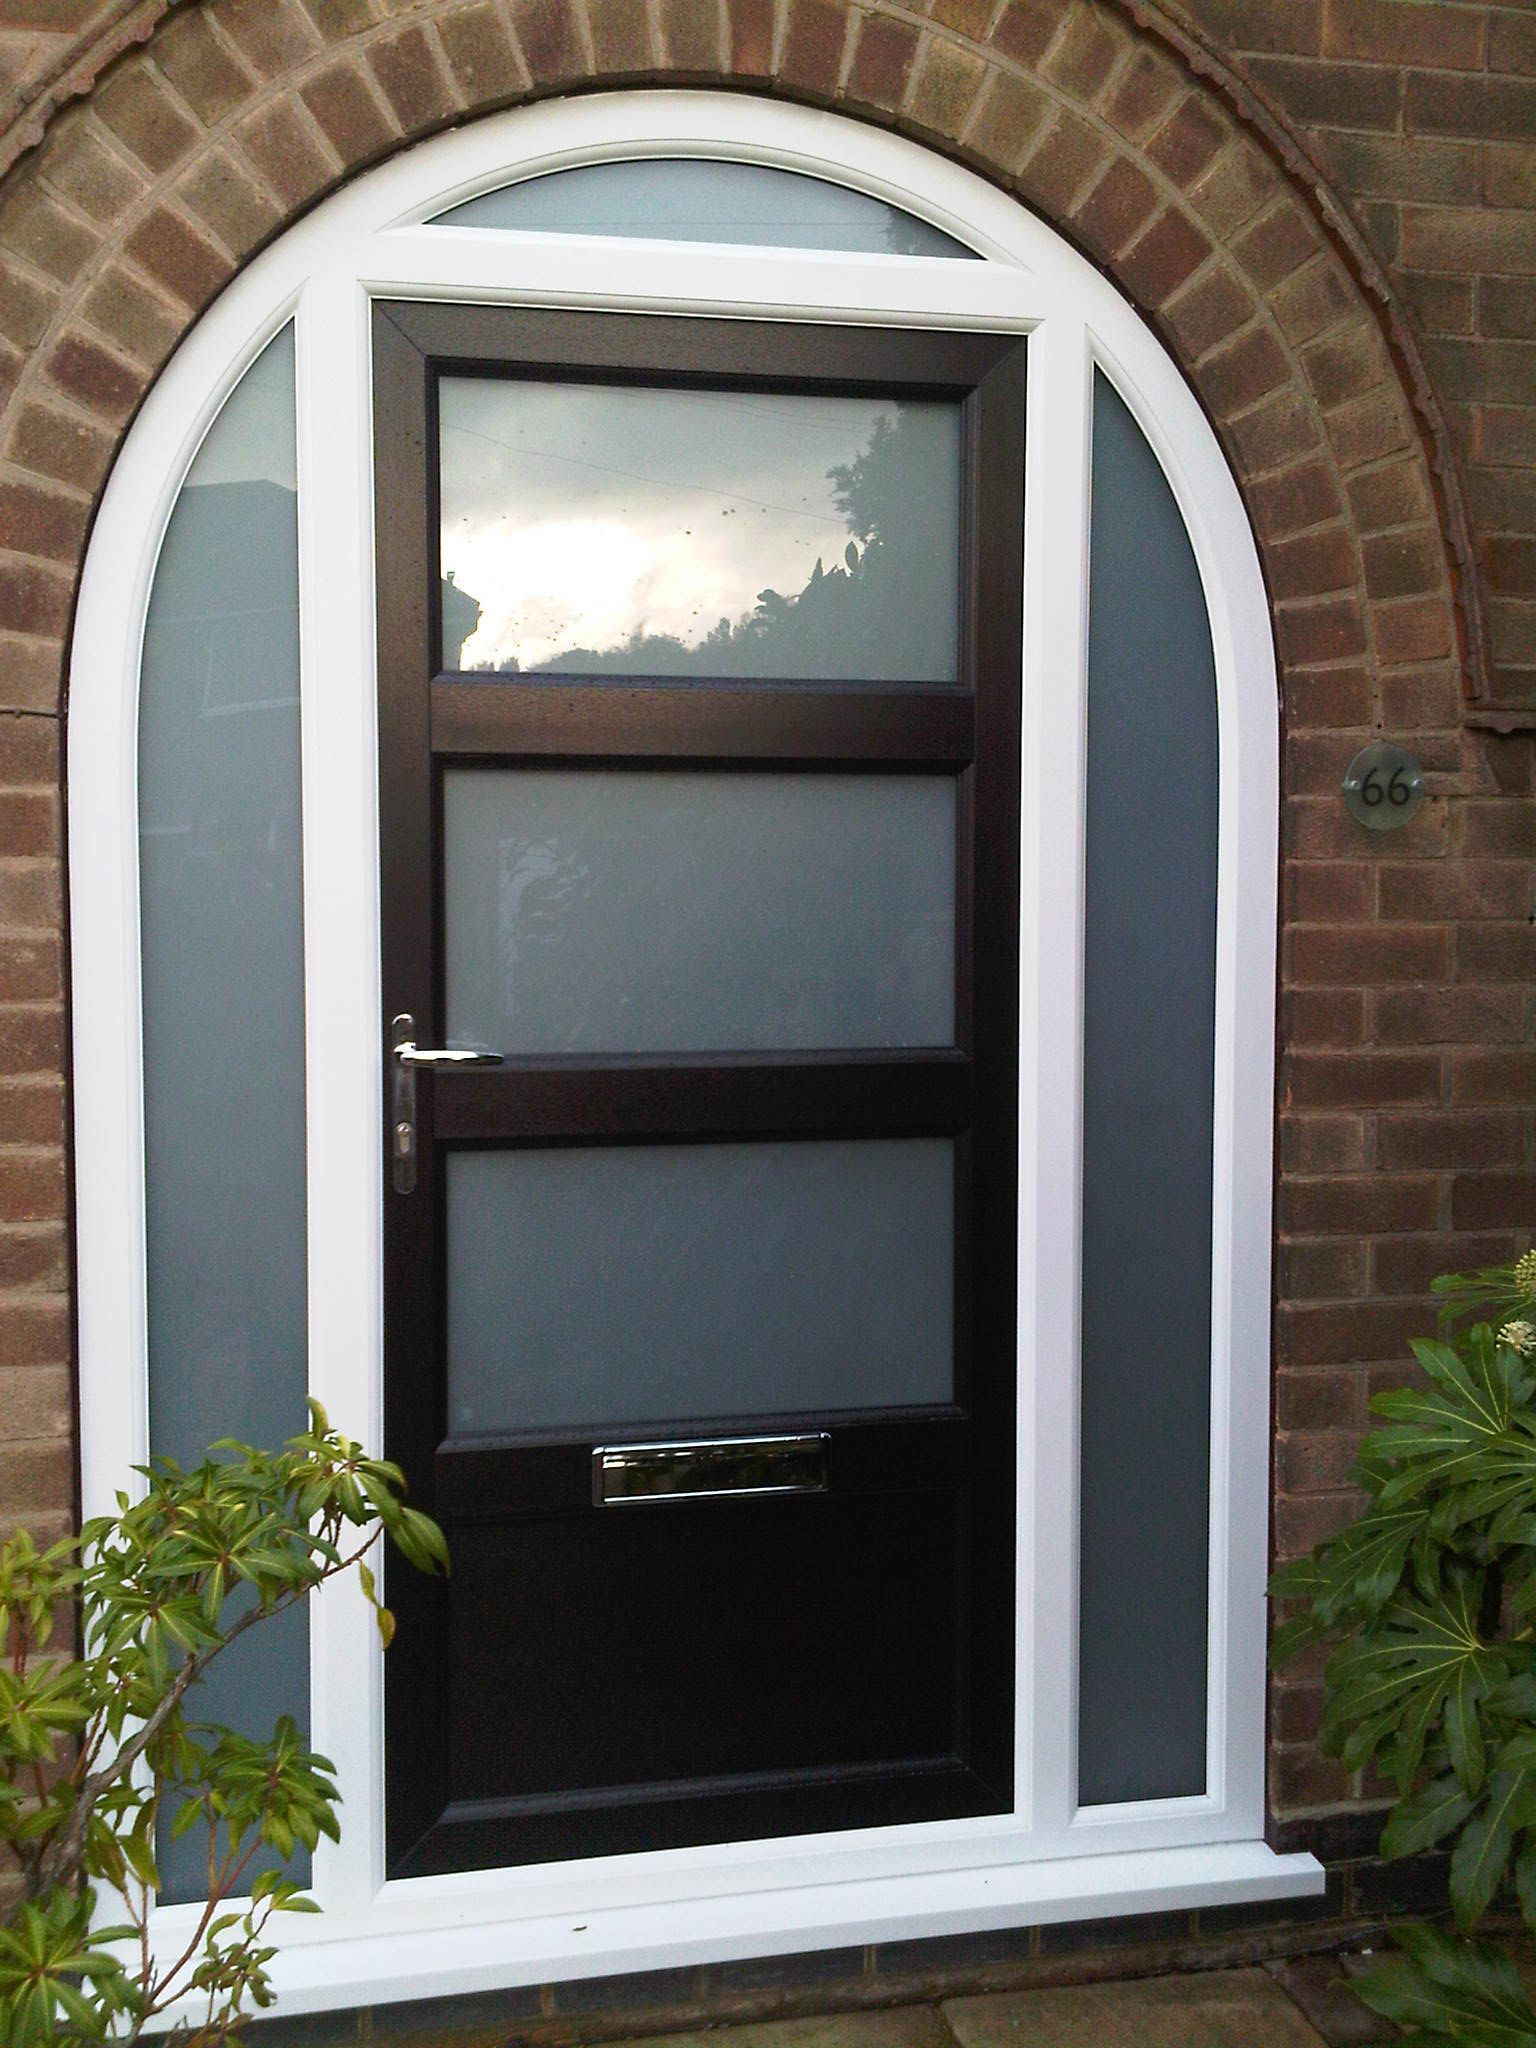 Bespoke Upvc Door In Black With Arched Top Frame Amp Side